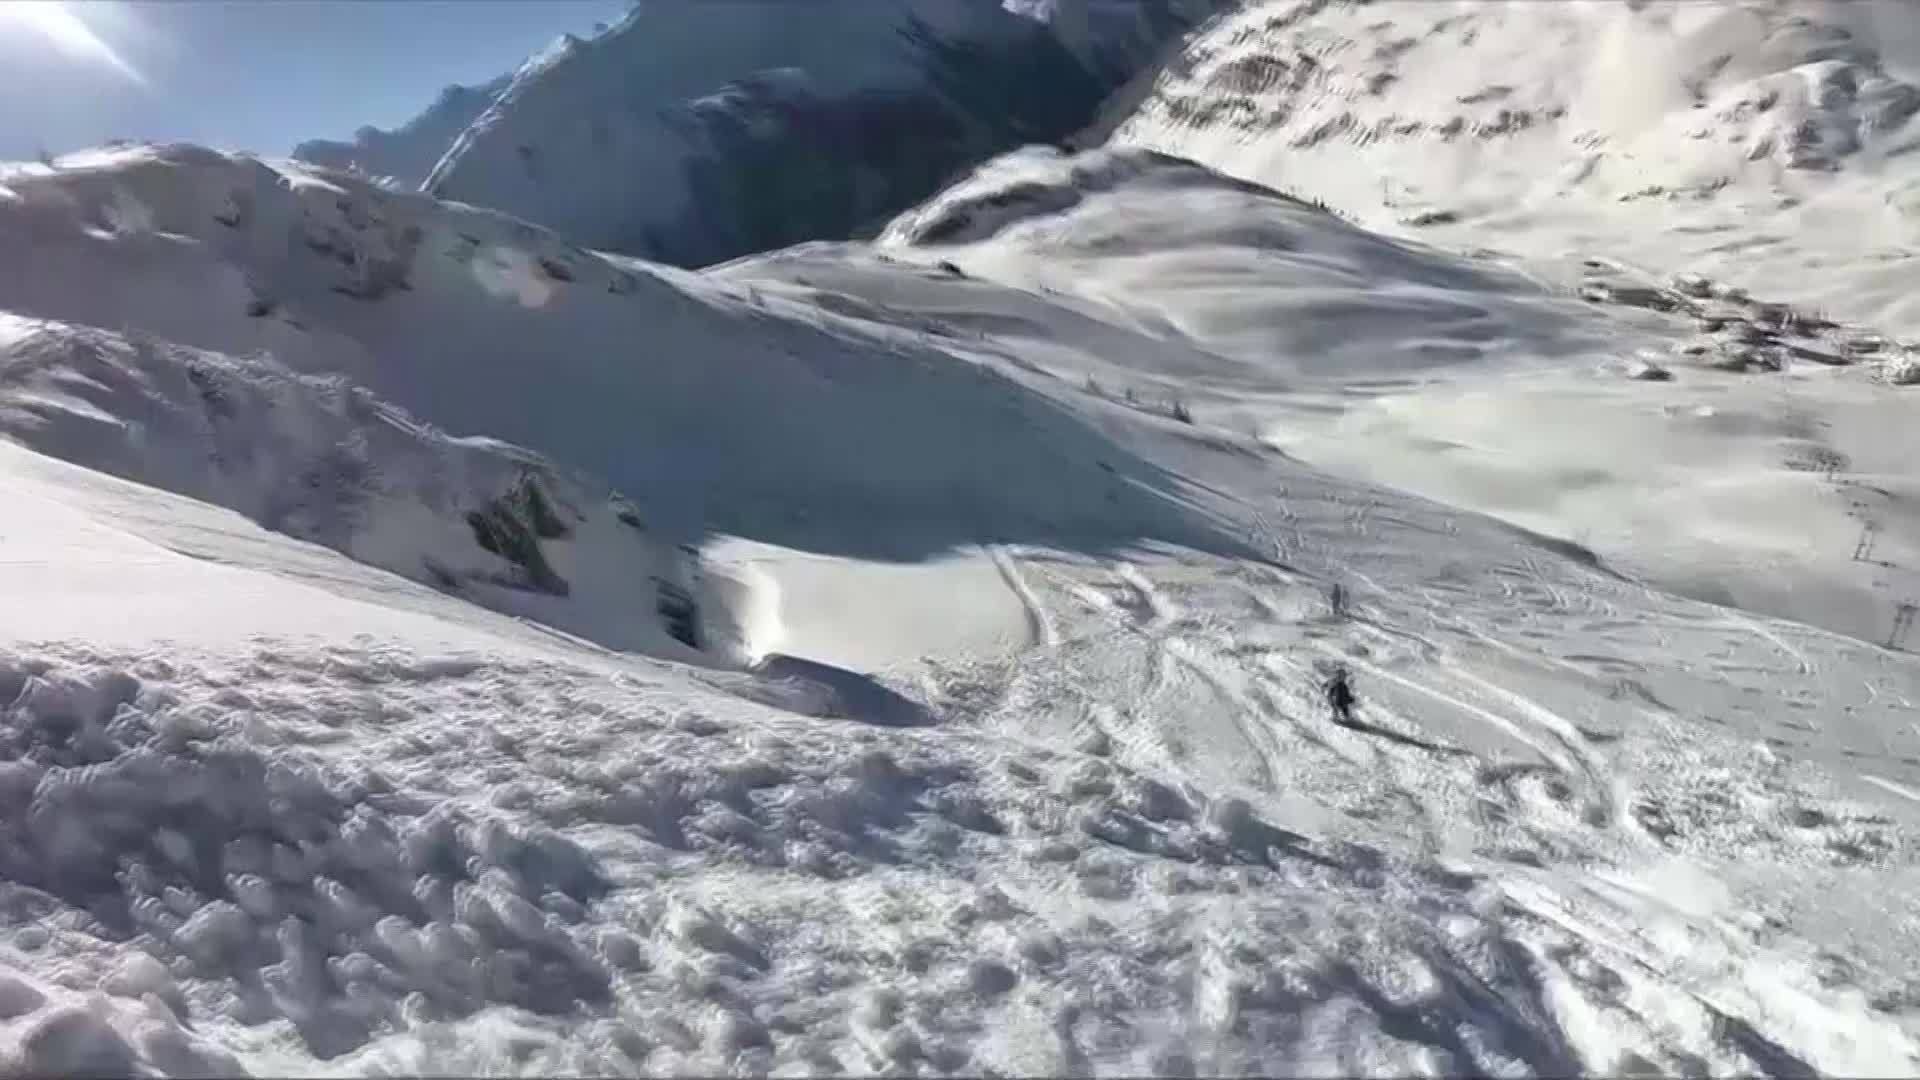 Caught_on_Camera_Skier_Avalanche_in_Aust_0_20190320160203